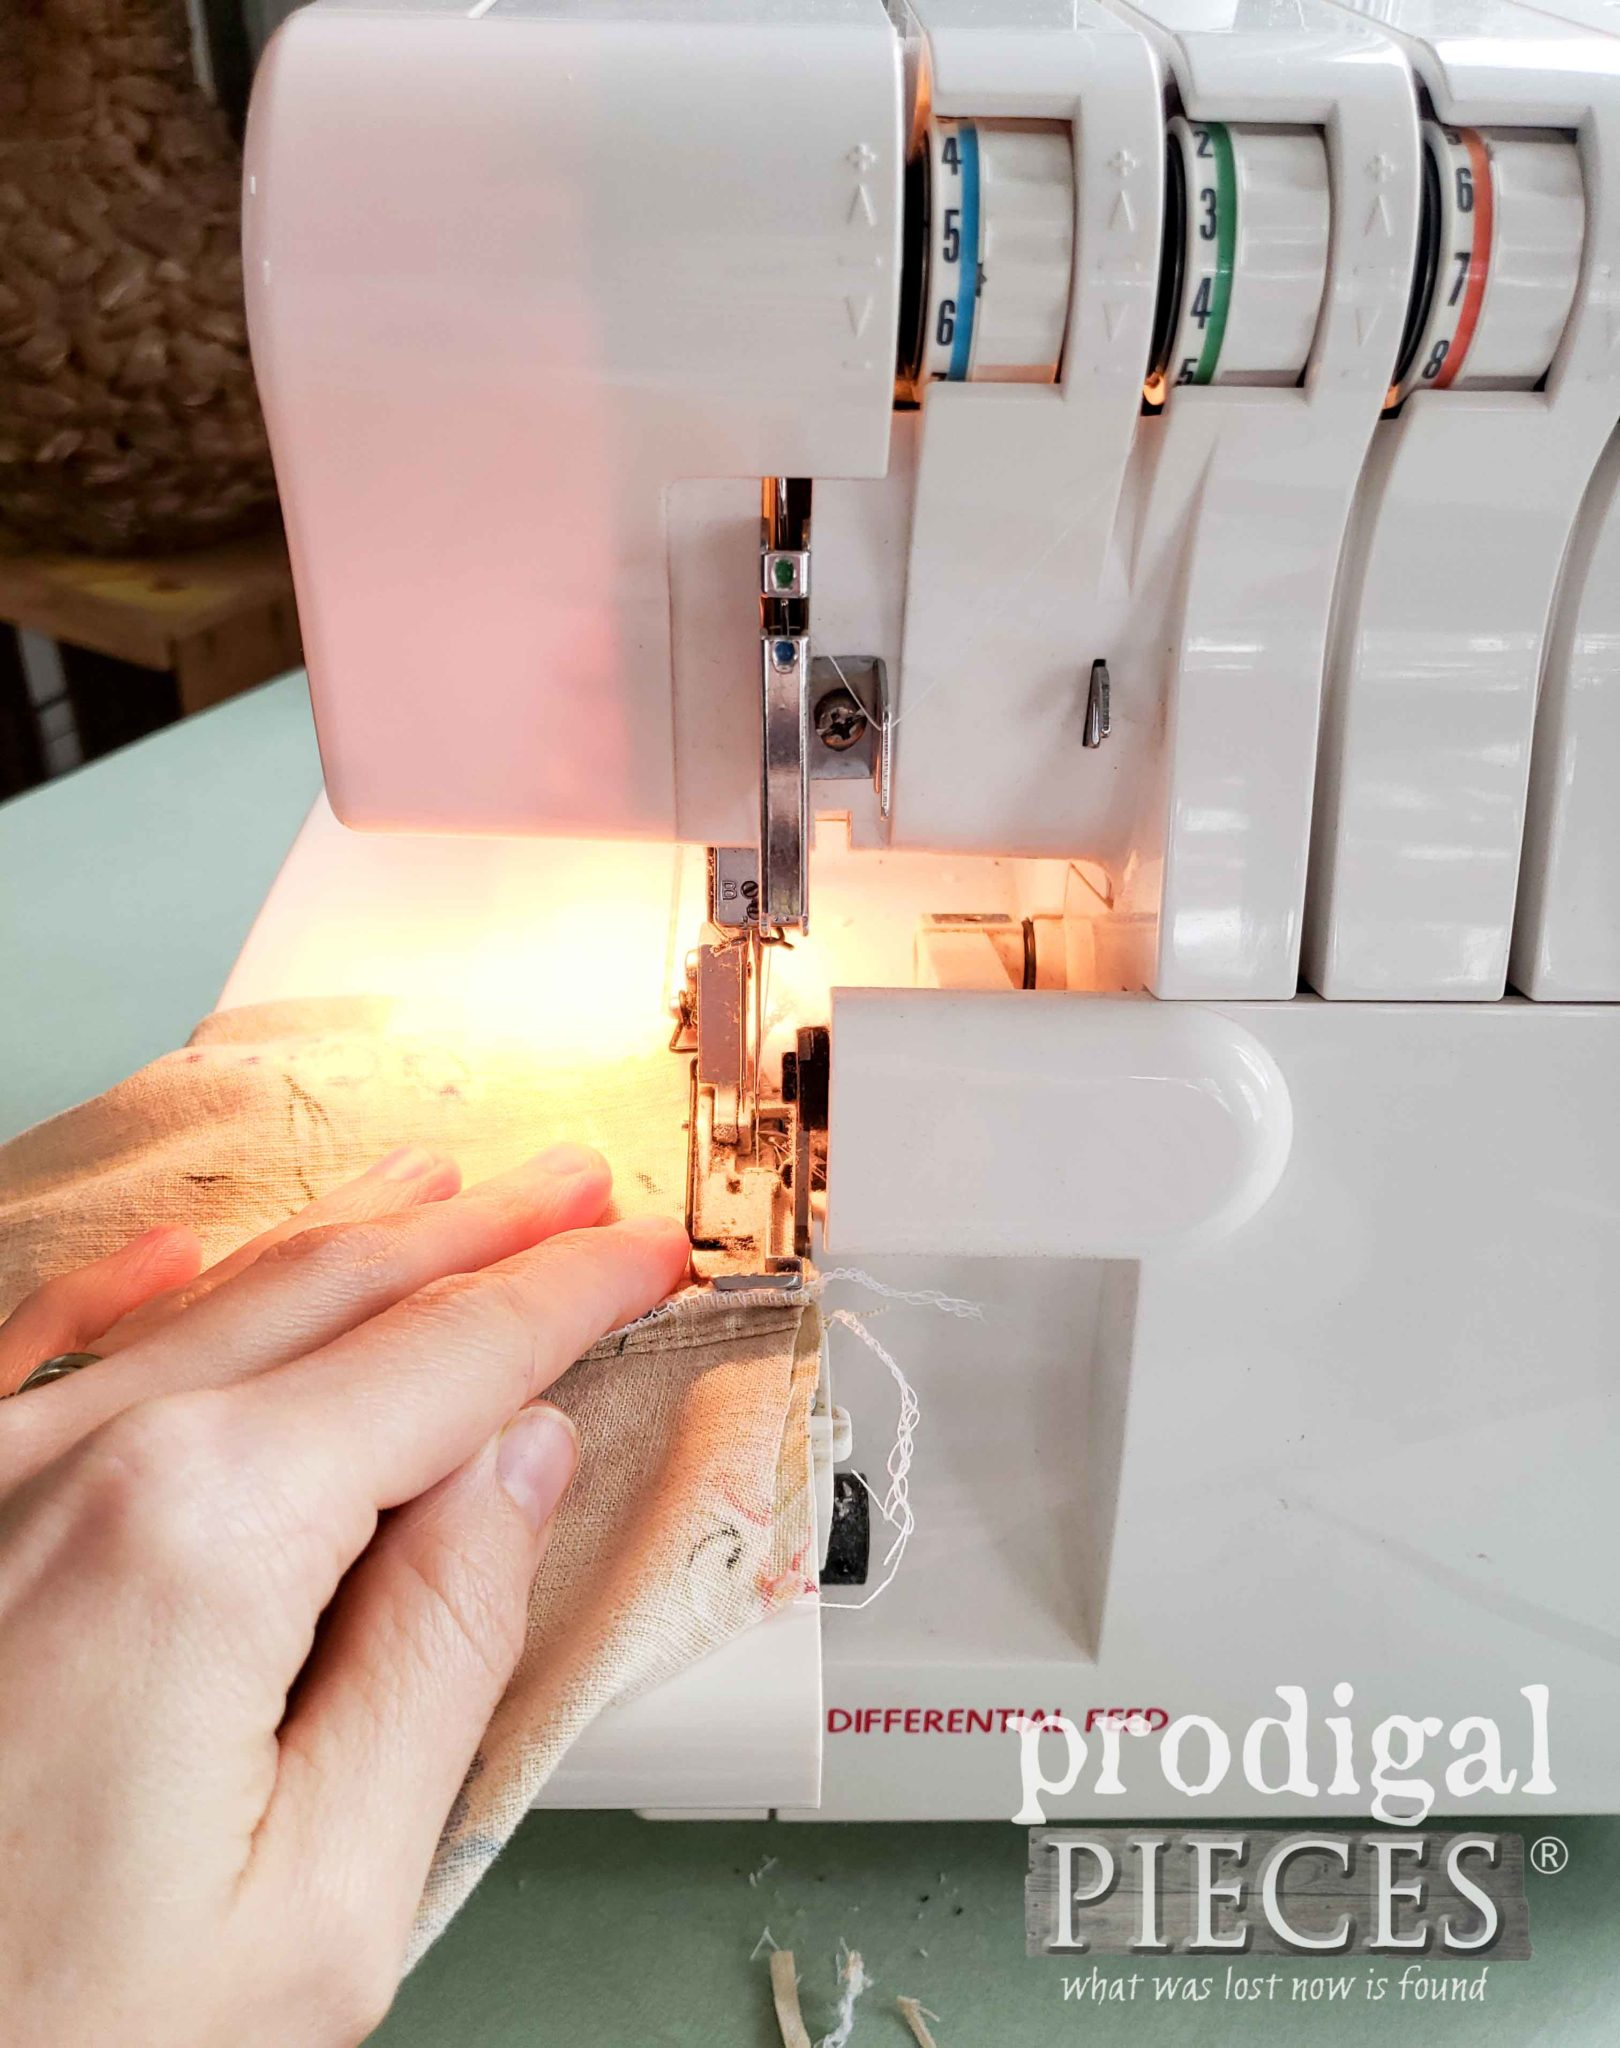 Serging Lunch Bag Layers with Singer Overlock Serger | prodigalpieces.com